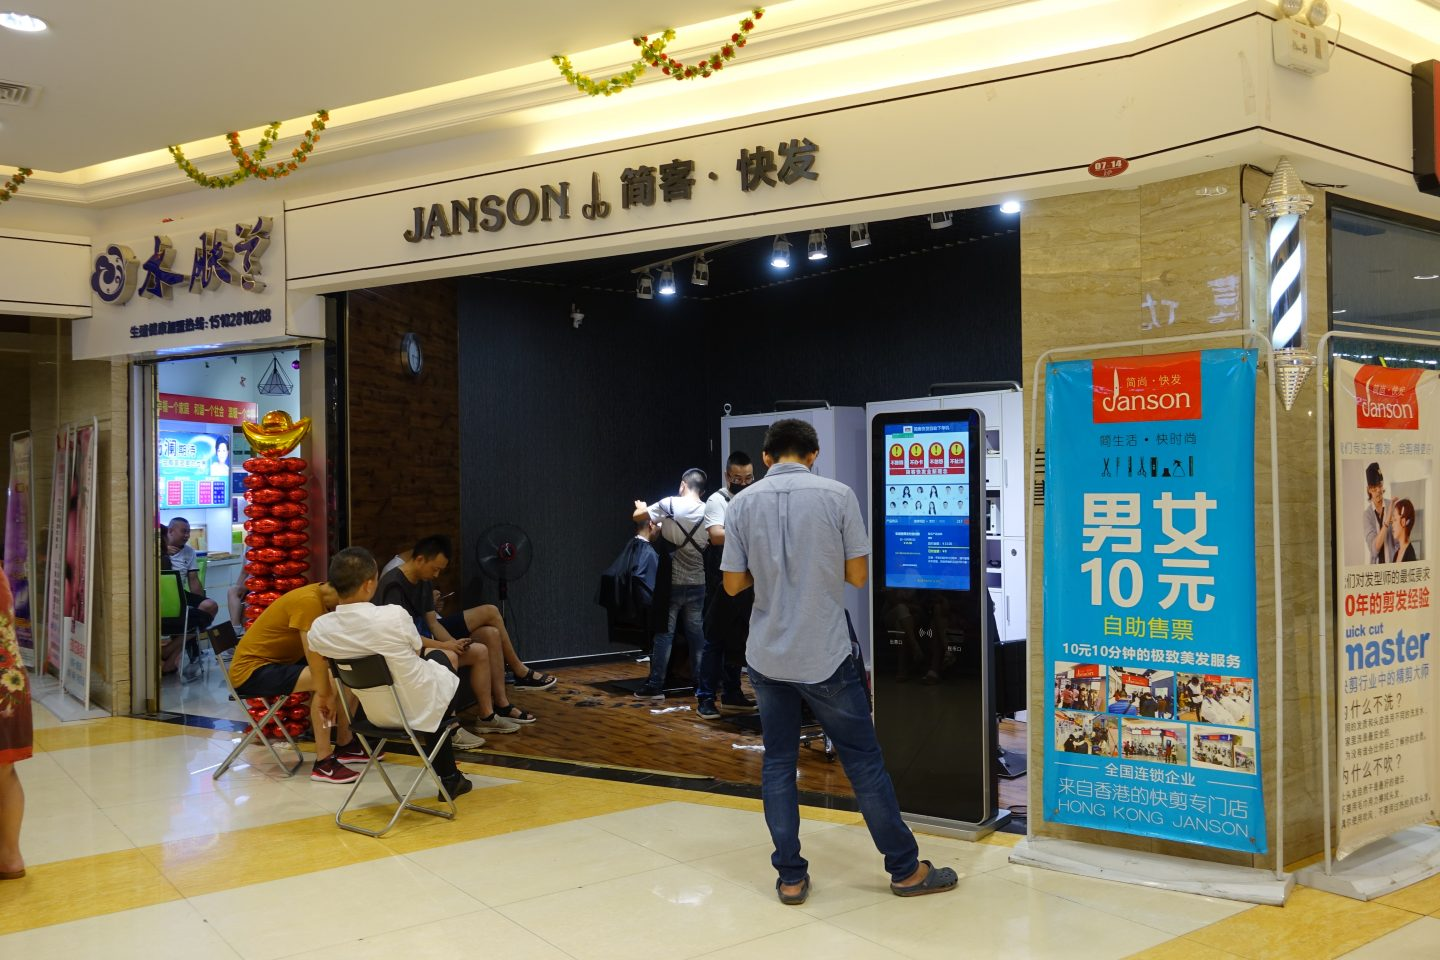 janson haircut chengdu